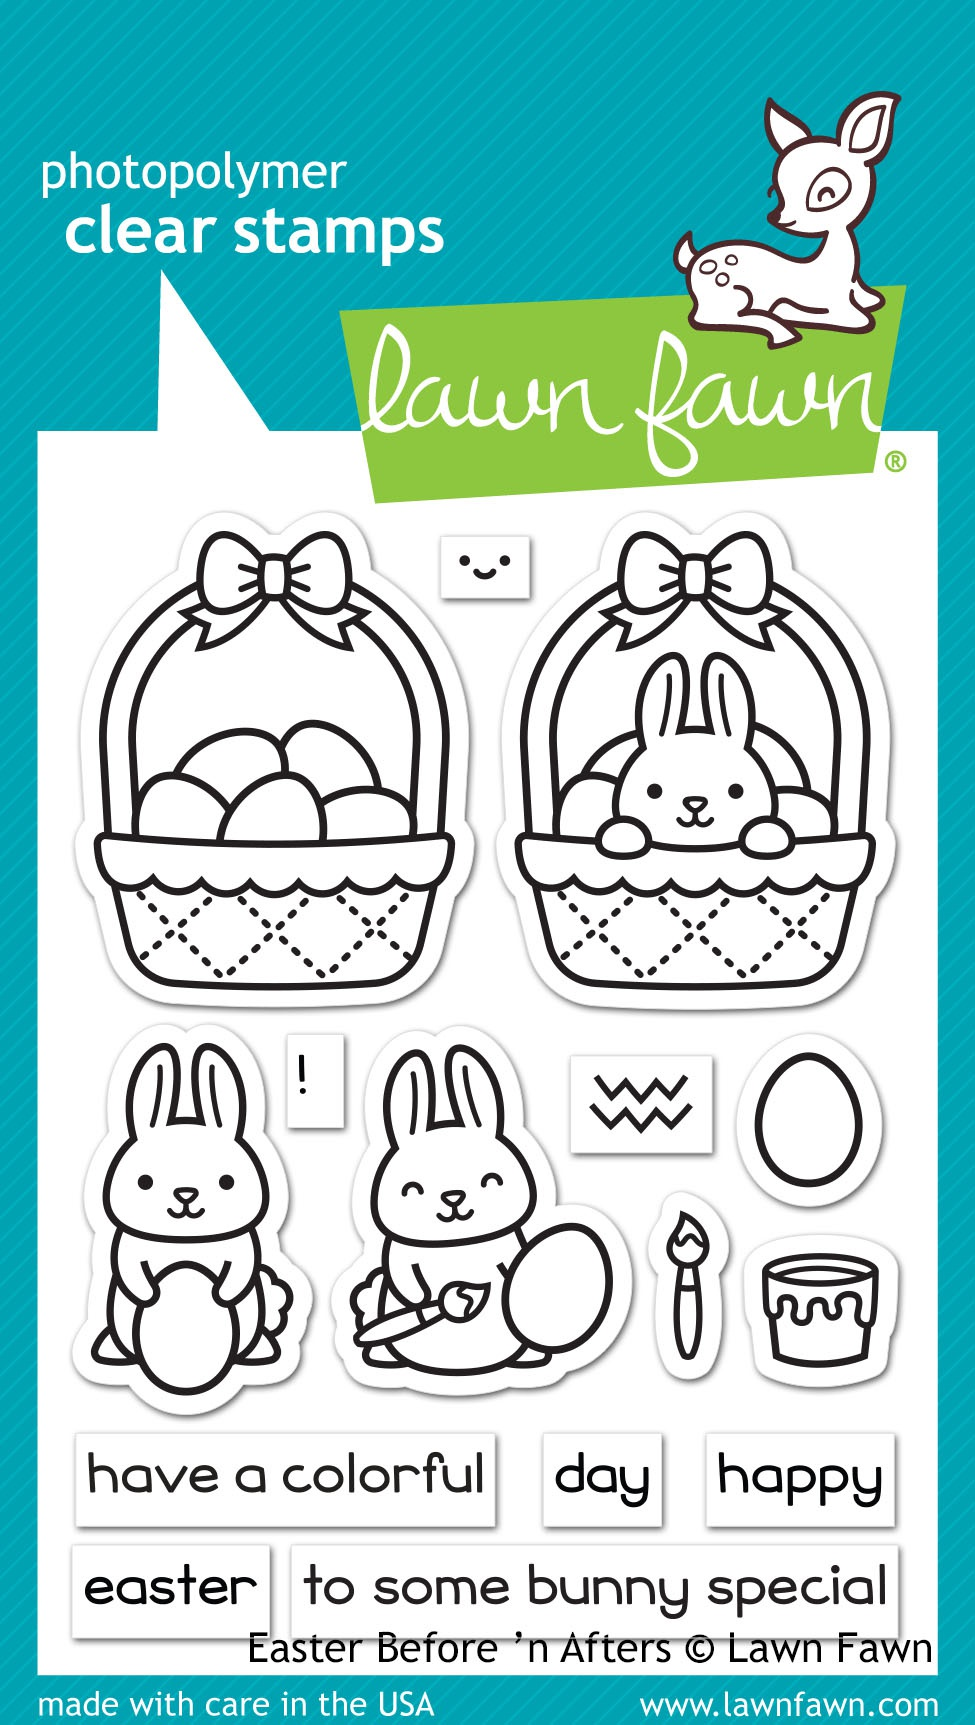 Lawn Fawn Clear Stamps 3X4-Easter Before 'n Afters